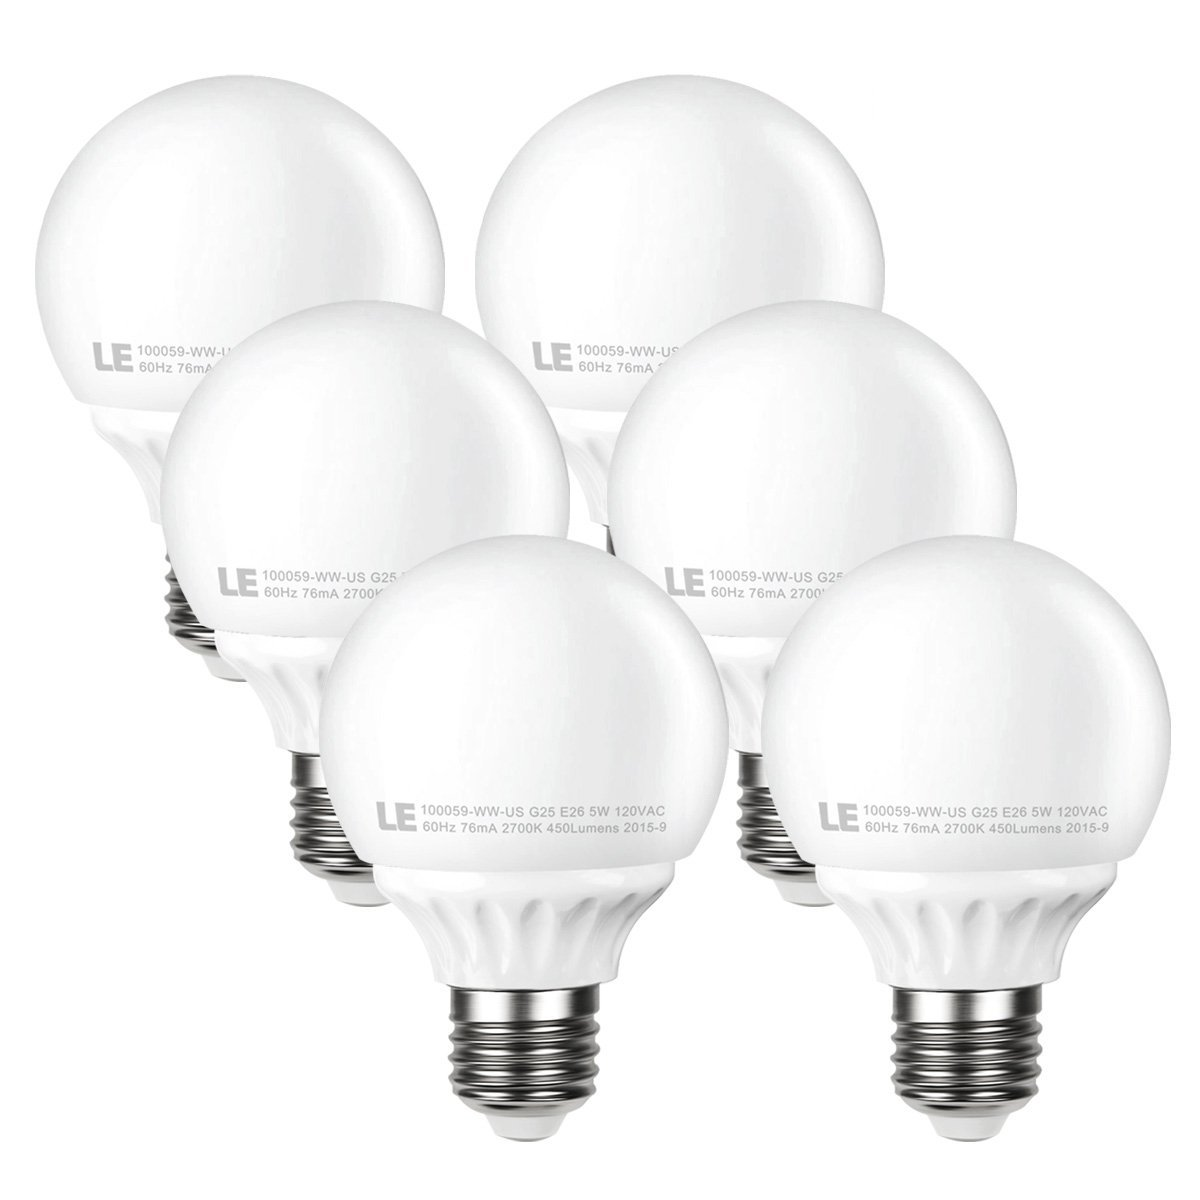 le 5w g25 e26 led bulbs 40w incandescent bulb equivalent not dimmable 450lm ebay. Black Bedroom Furniture Sets. Home Design Ideas